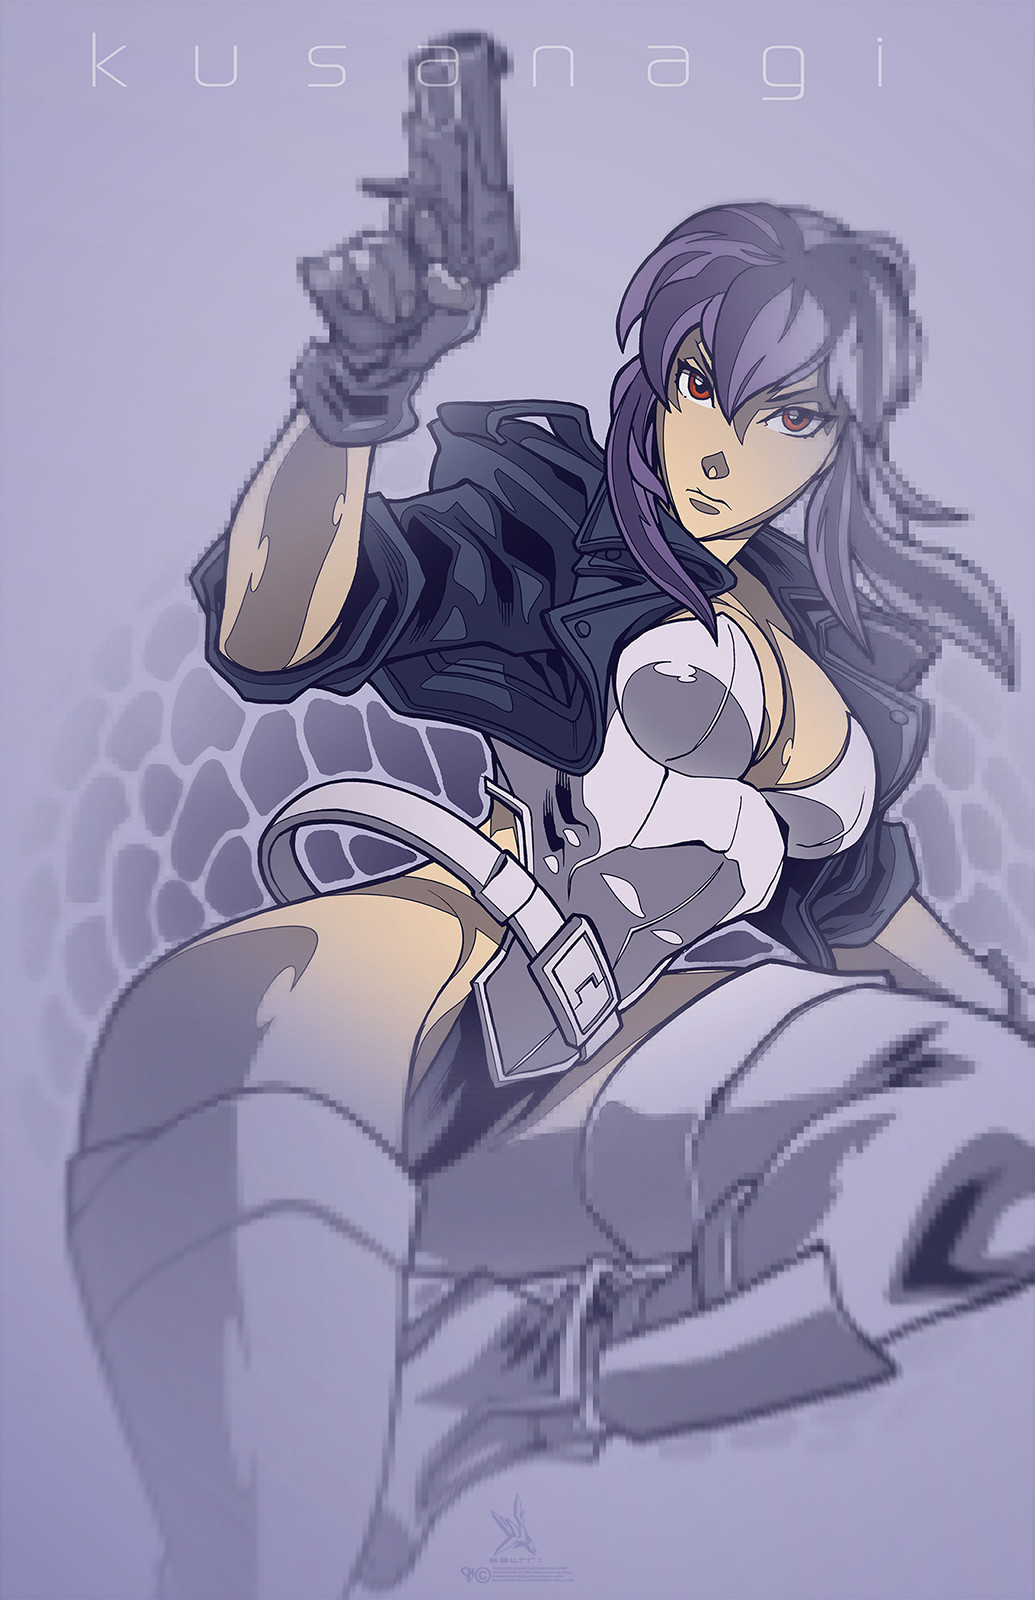 Ghost In The Shell Wallpaper, Motoko Kusanagi Background, Anime